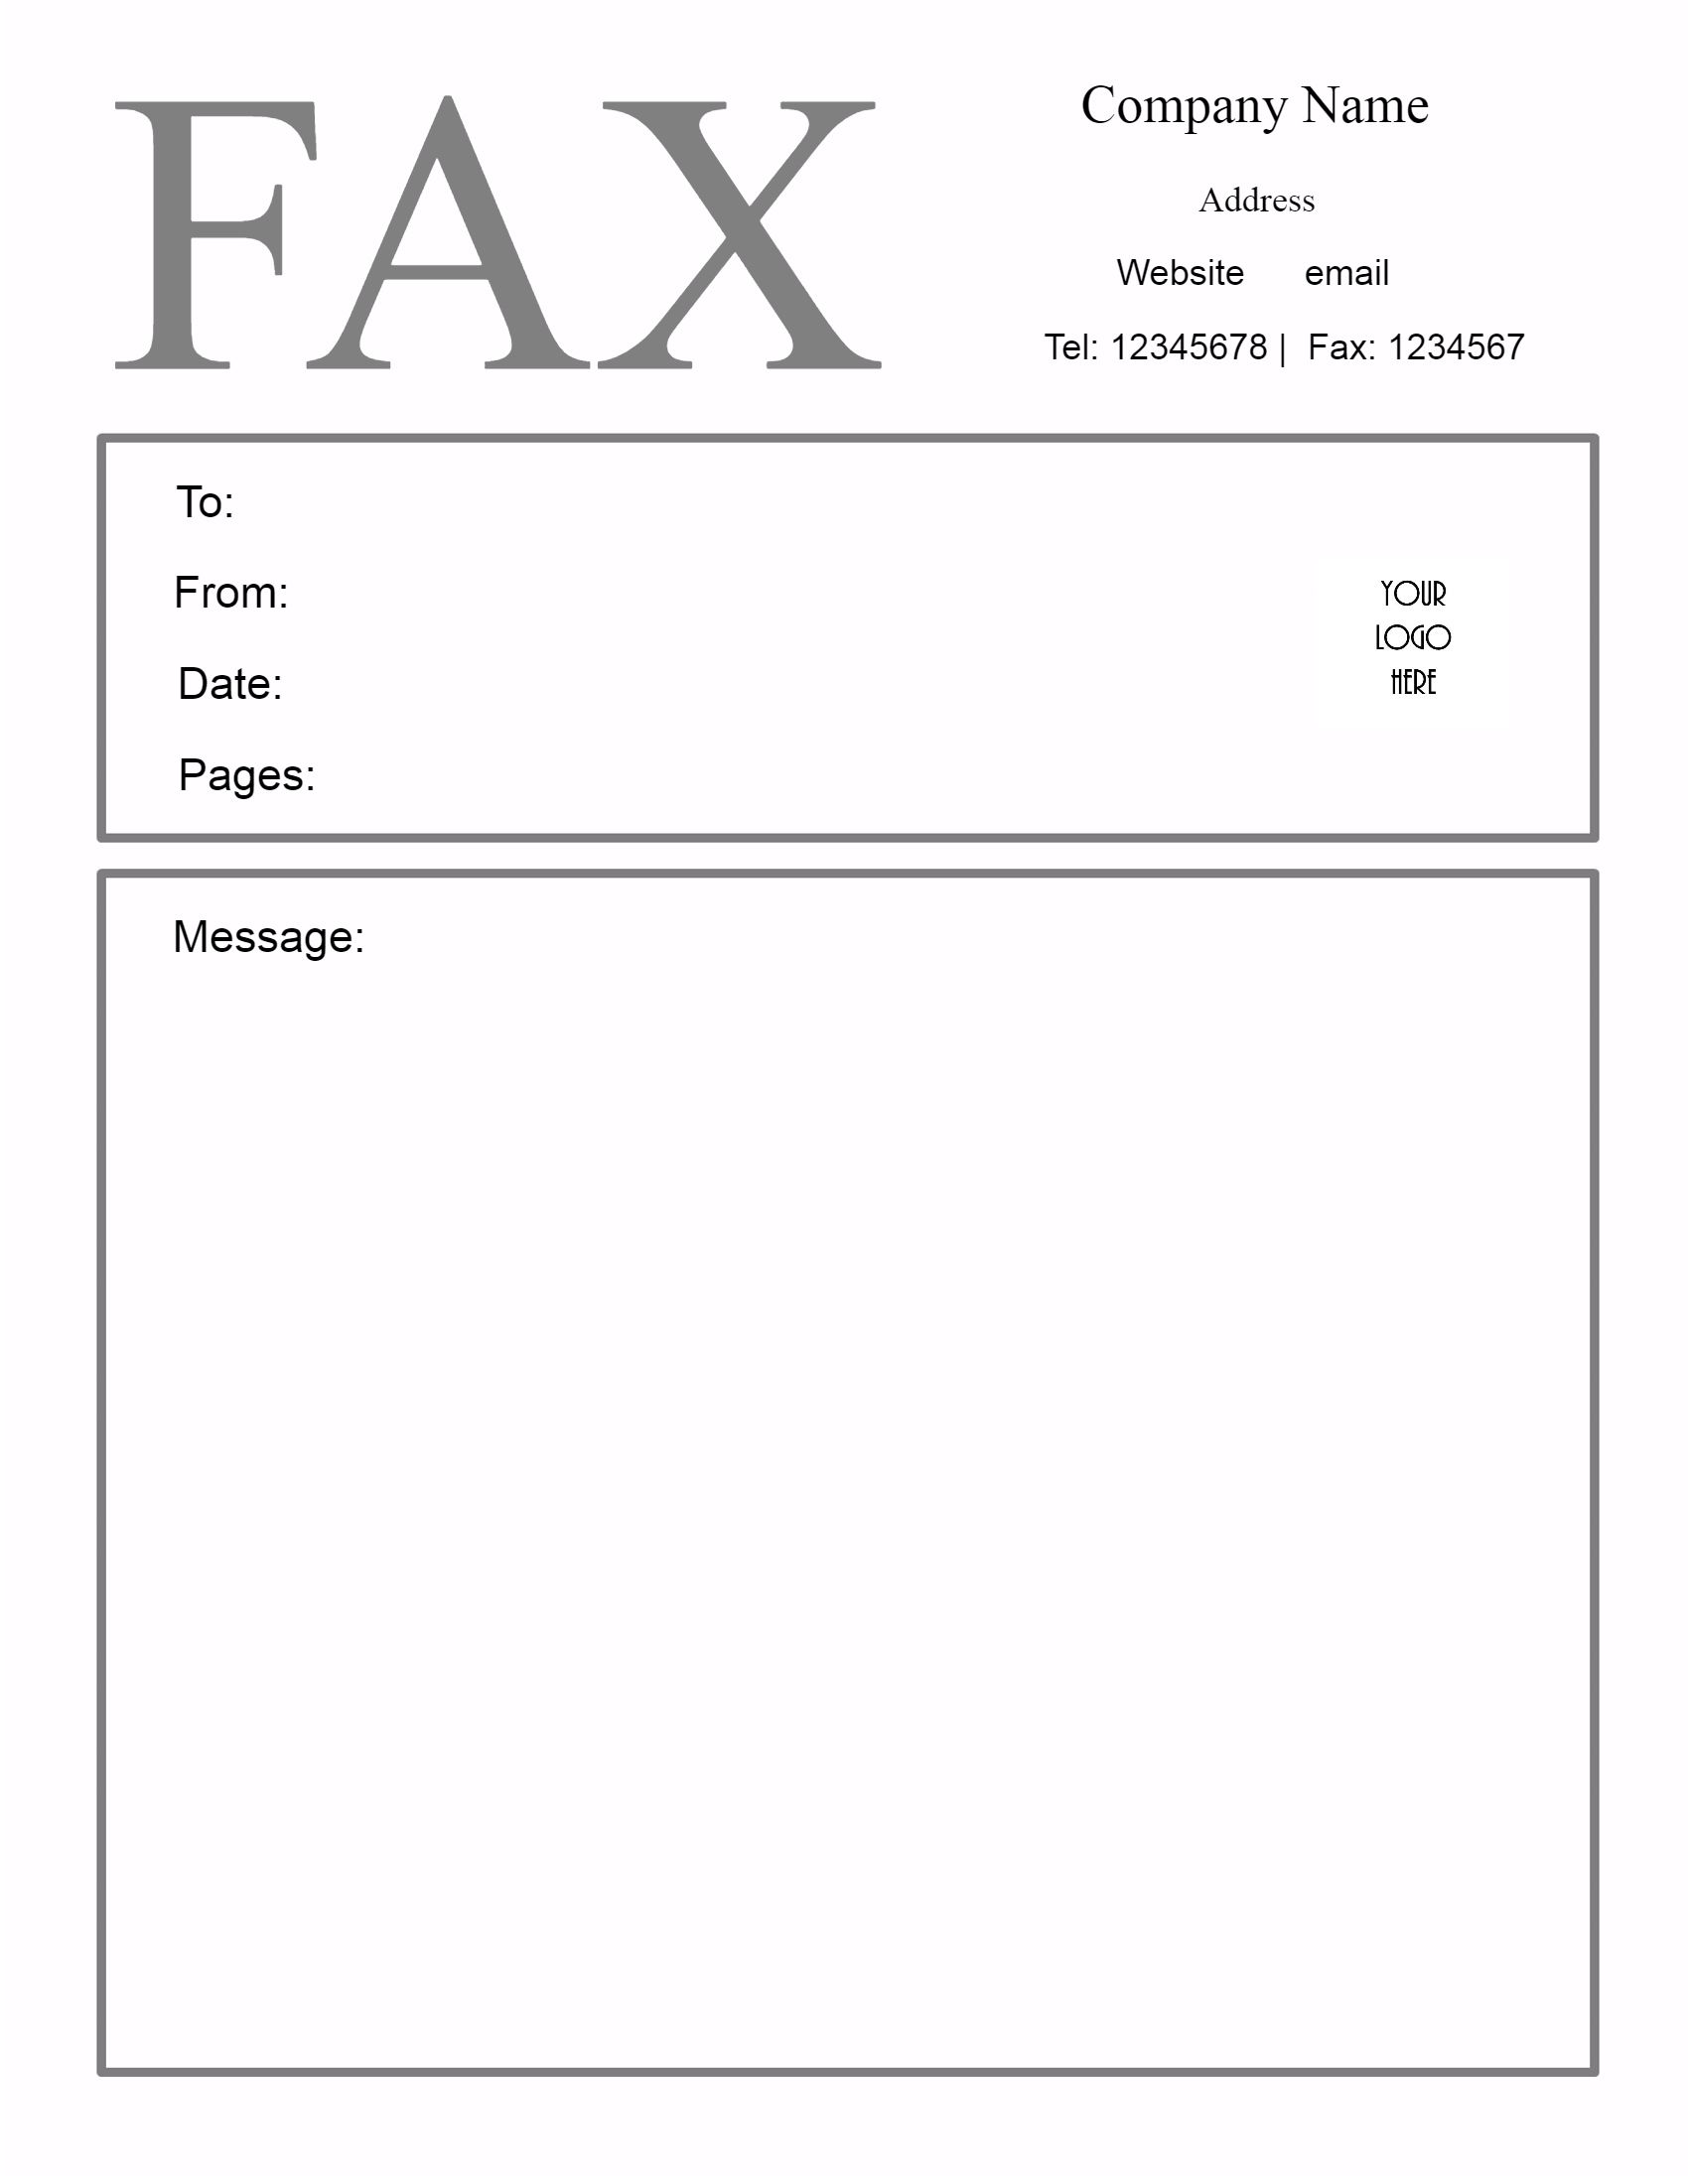 graphic about Printable Fax Cover Sheet Free named No cost Fax Deal with Sheet Template Customise On the internet then Print